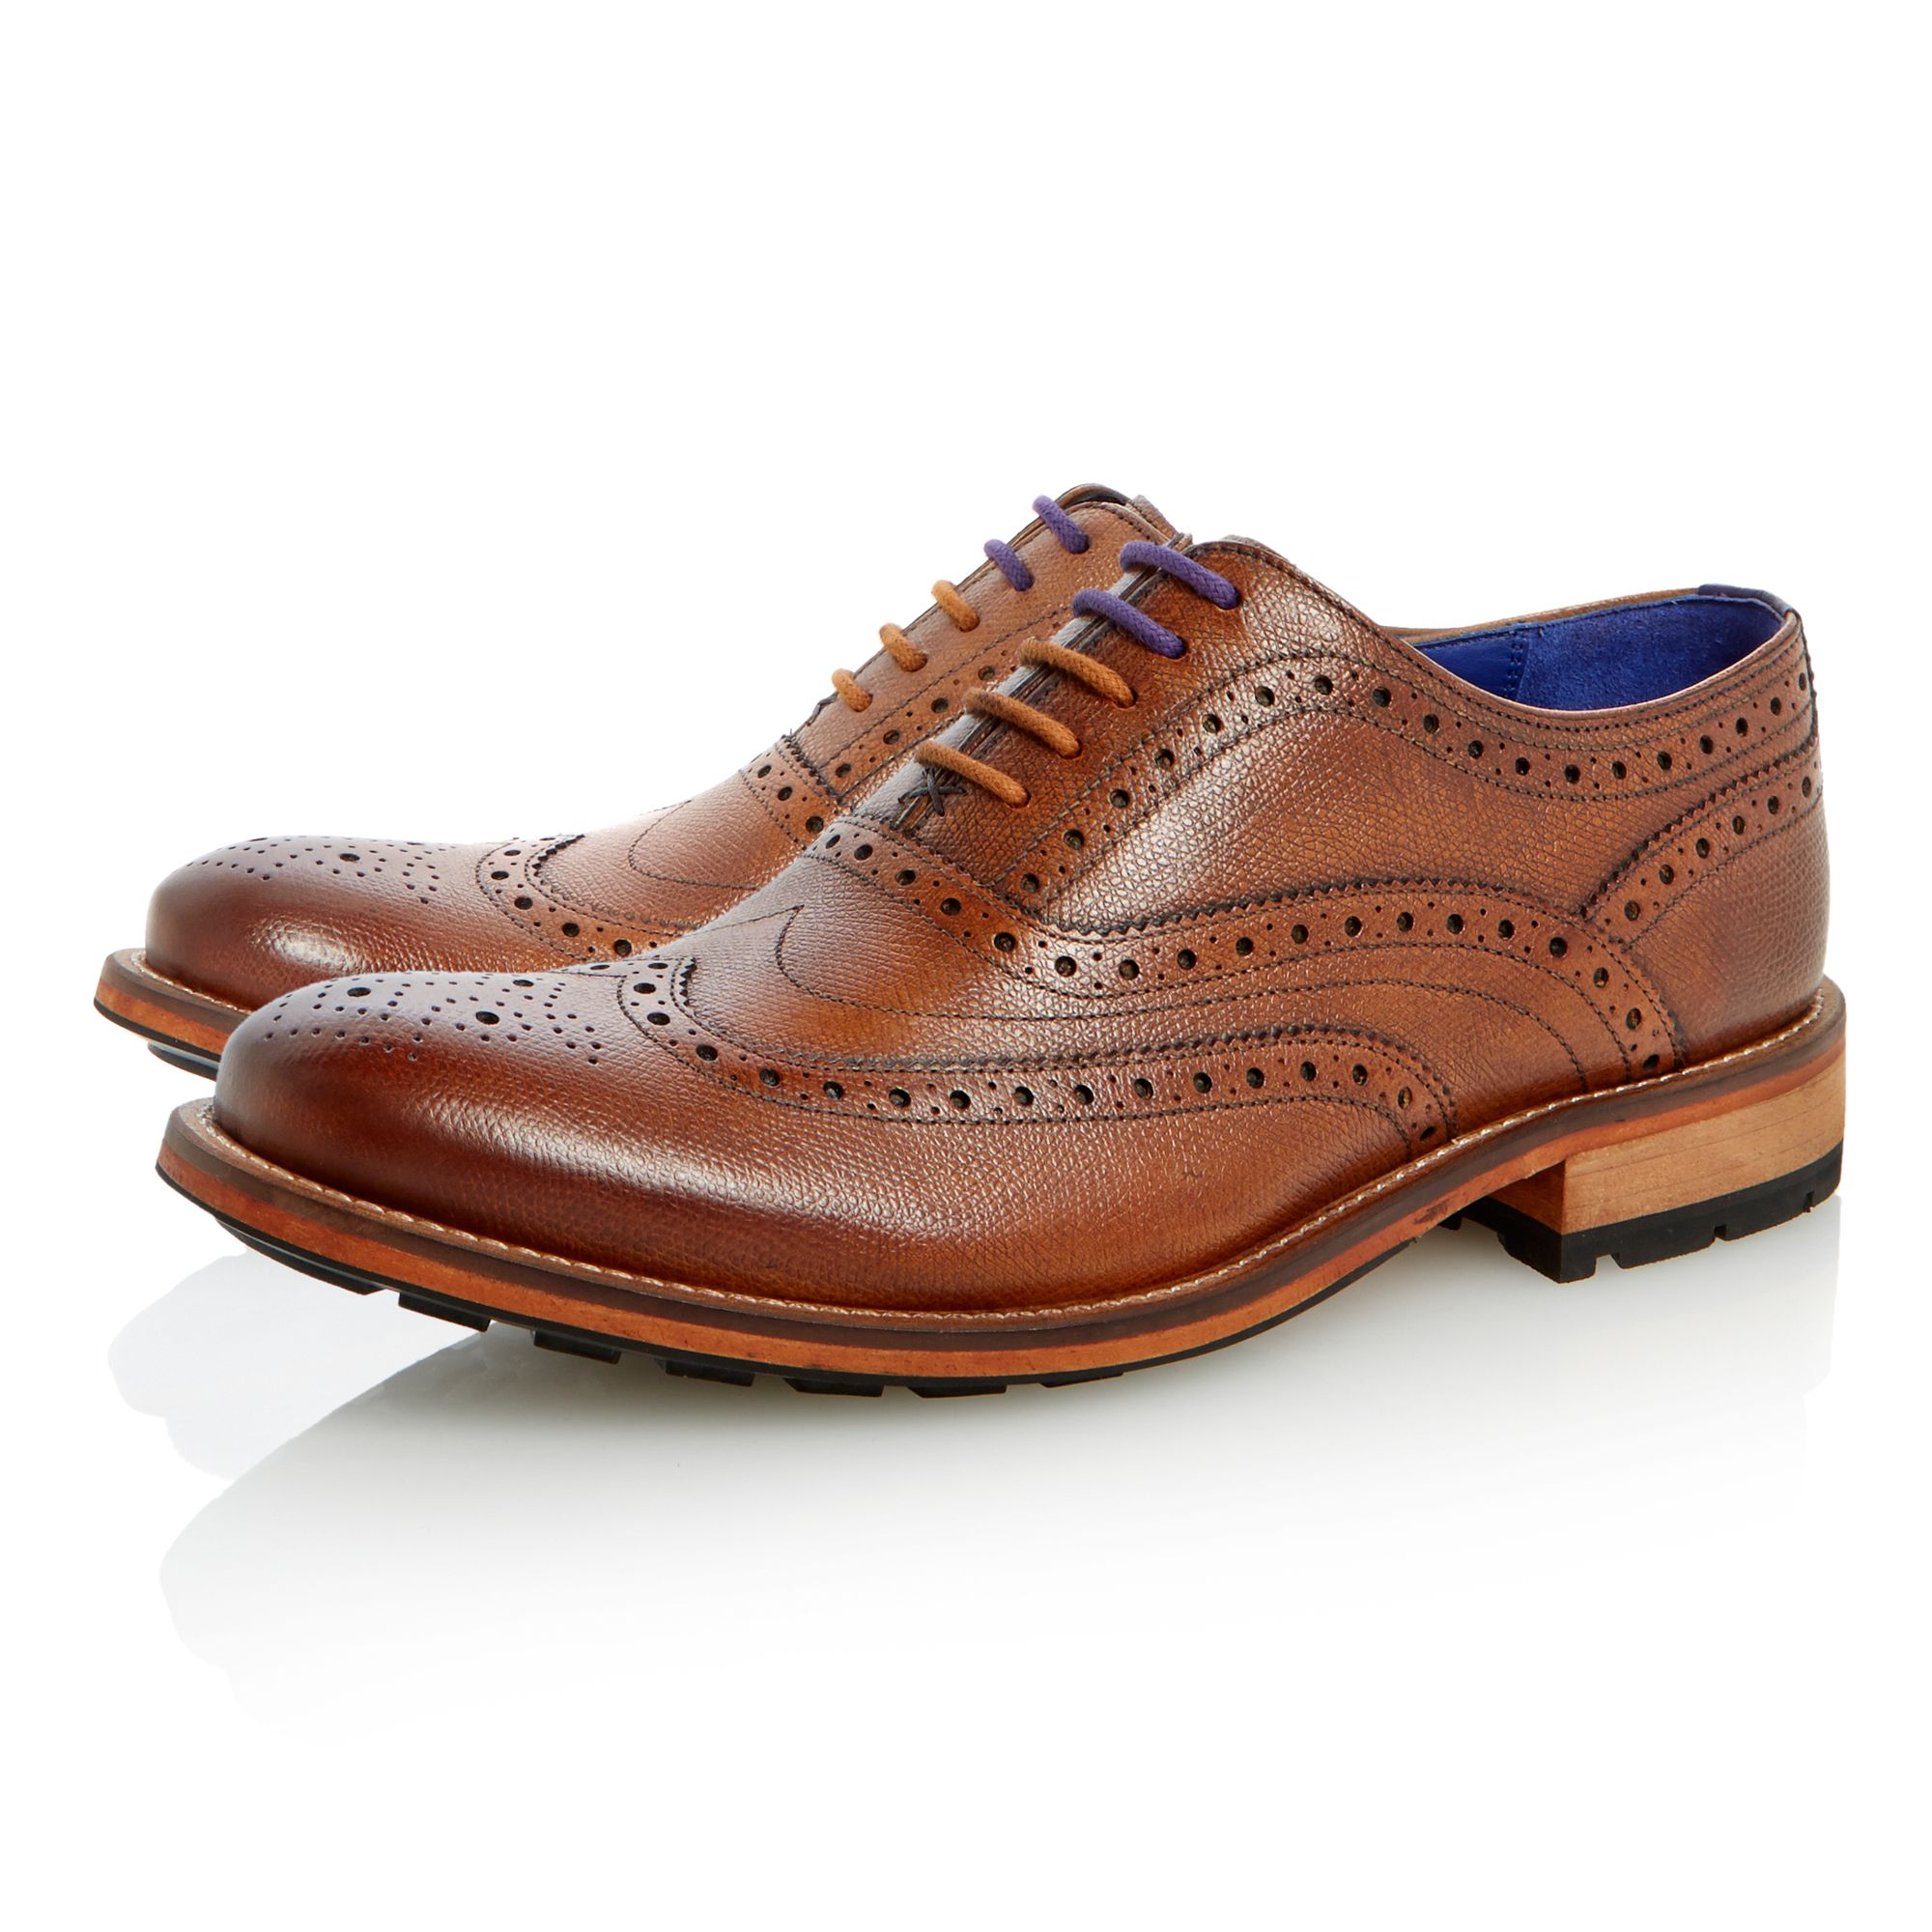 Guri 7 lace up heavy brogues